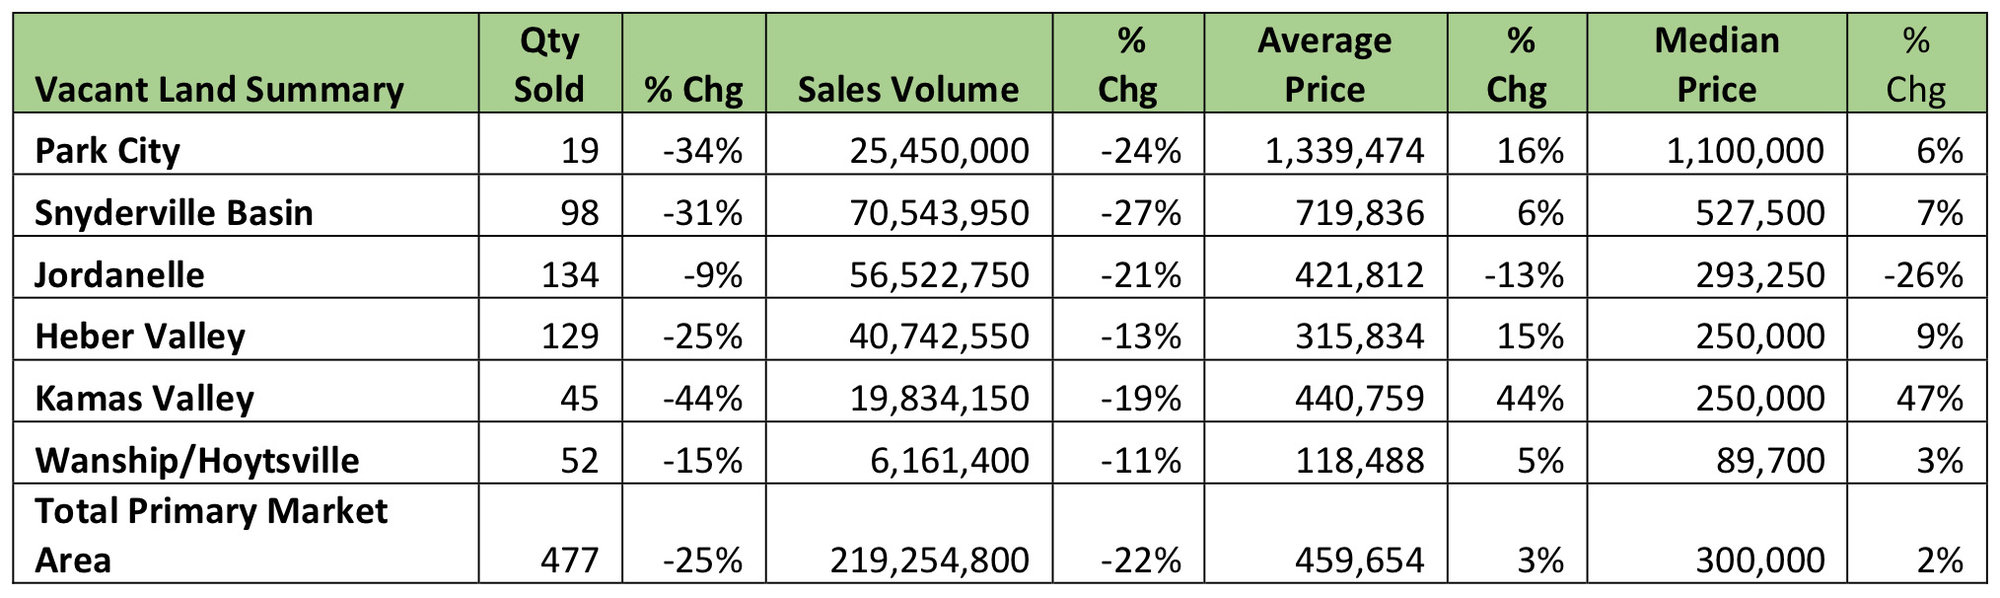 Park City Statistics Update for Land at year end of 2019